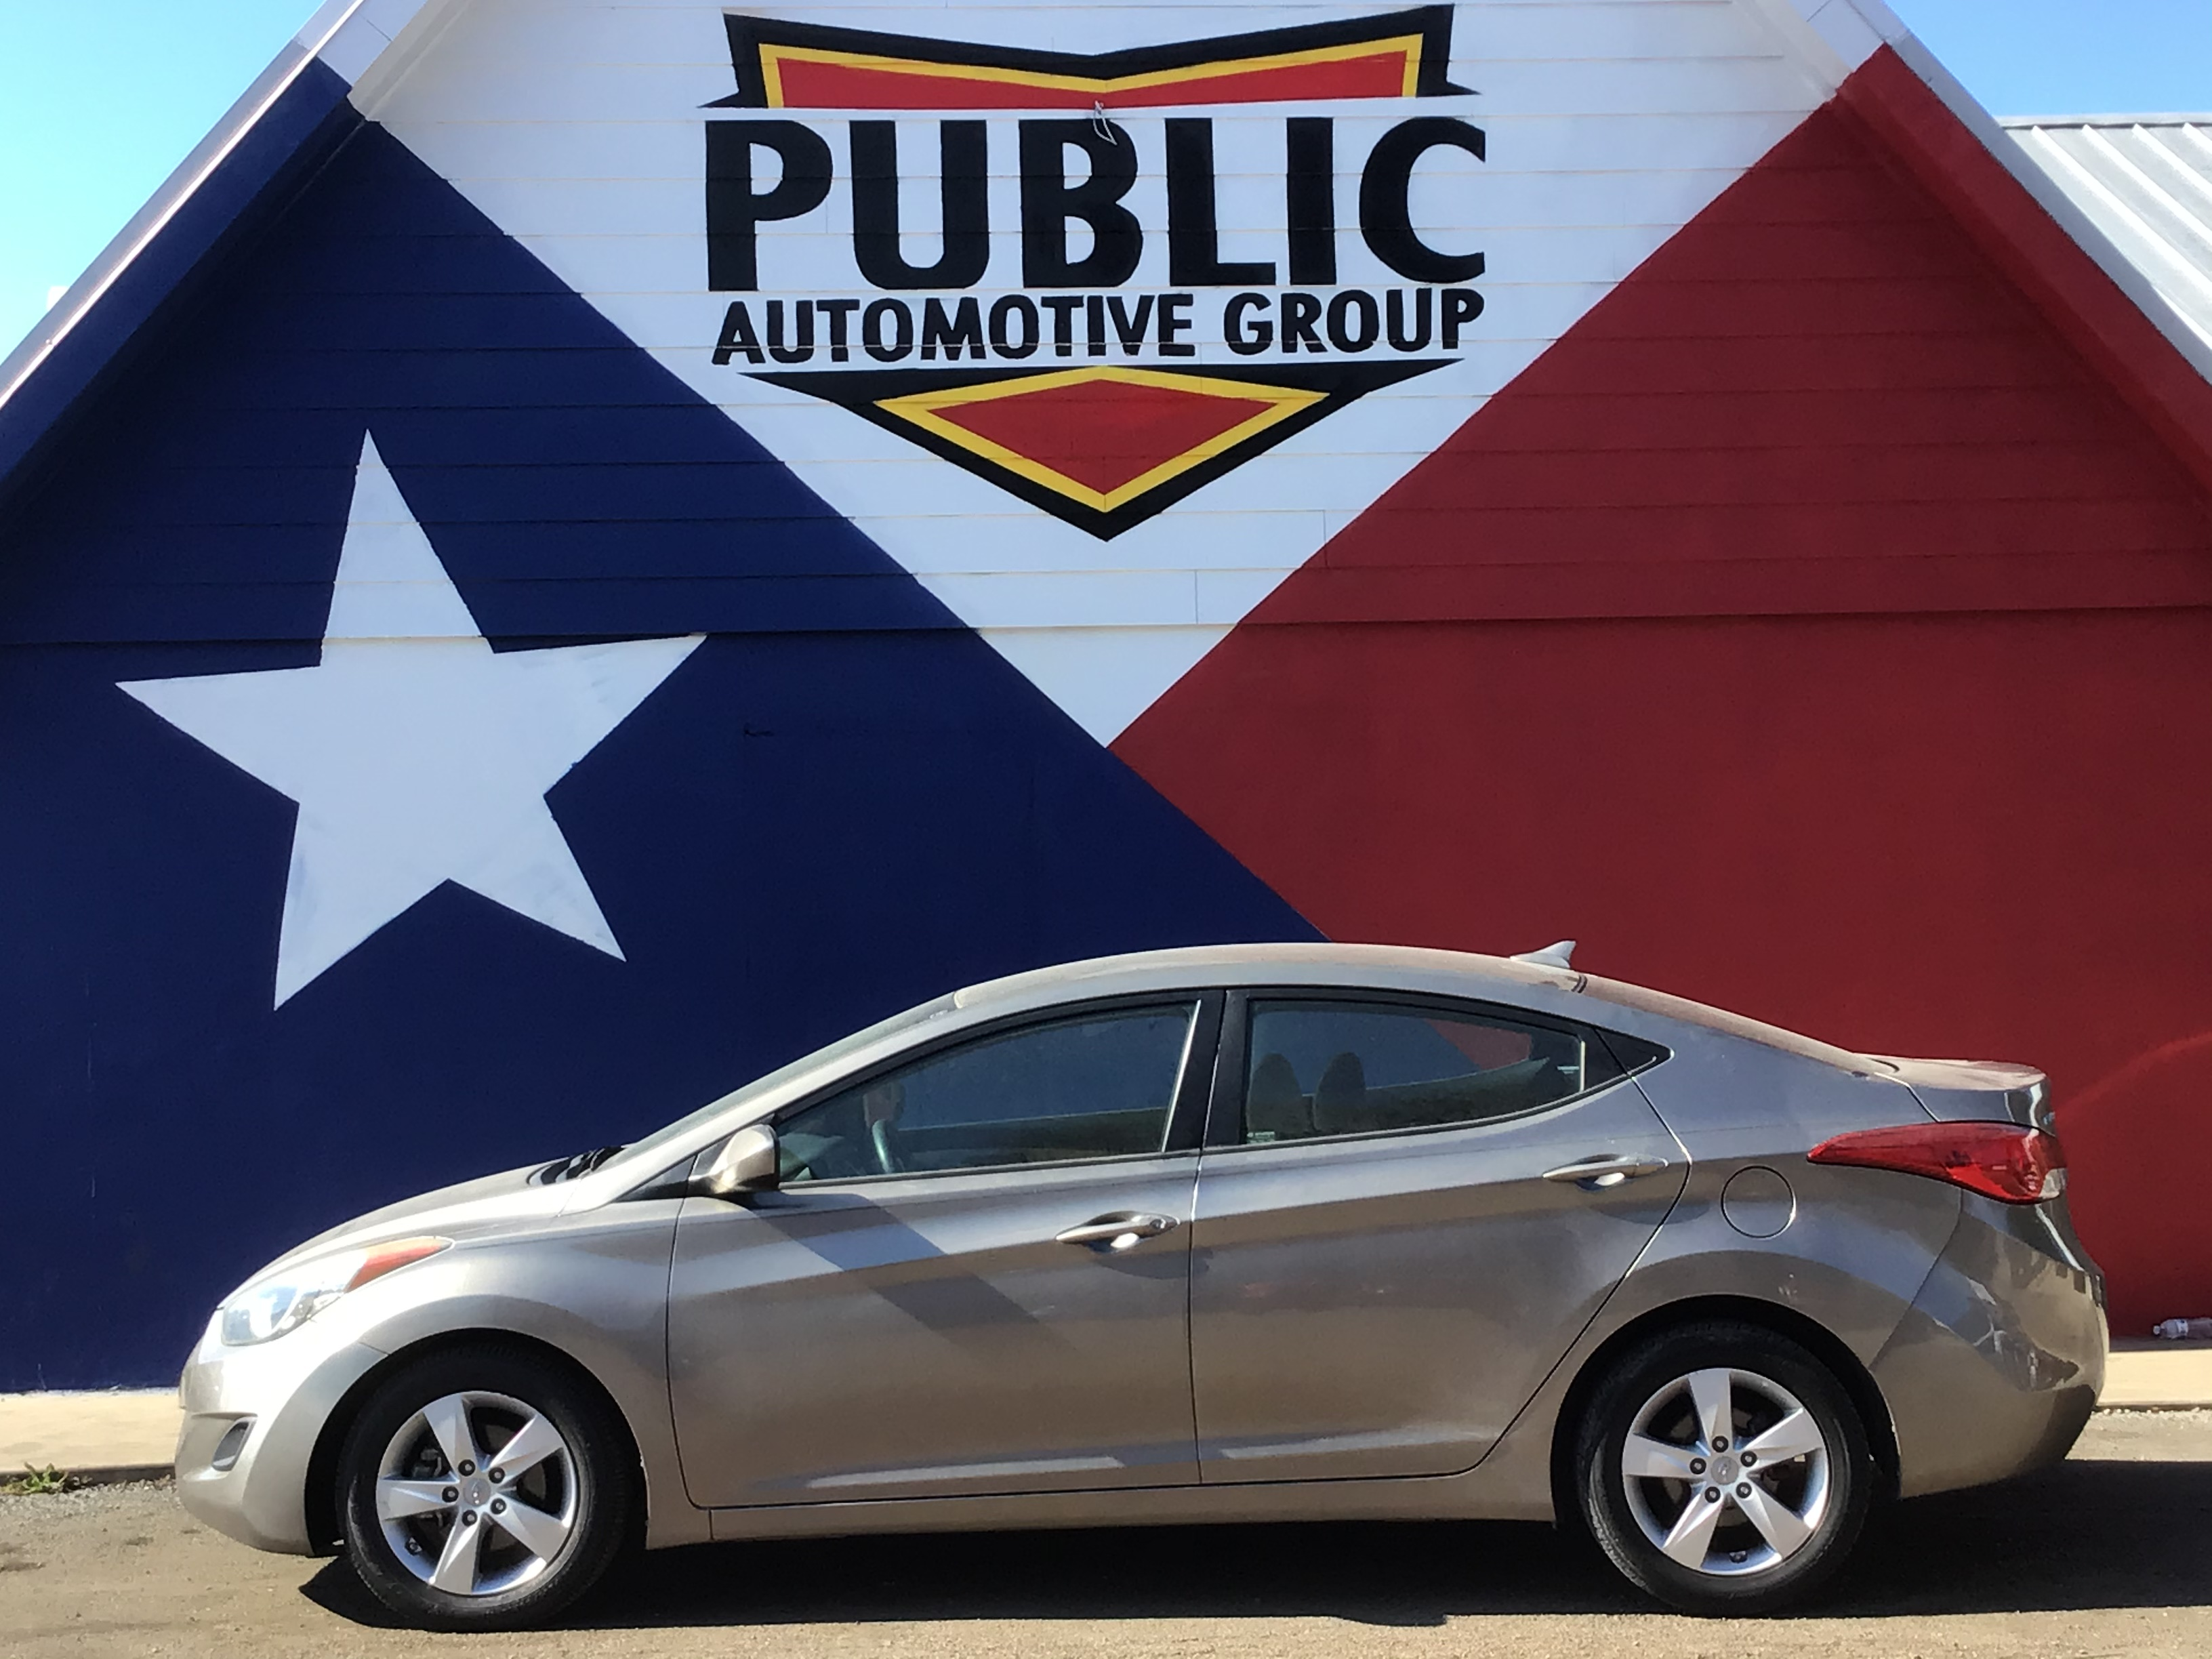 used vehicle - Sedan HYUNDAI ELANTRA 2013